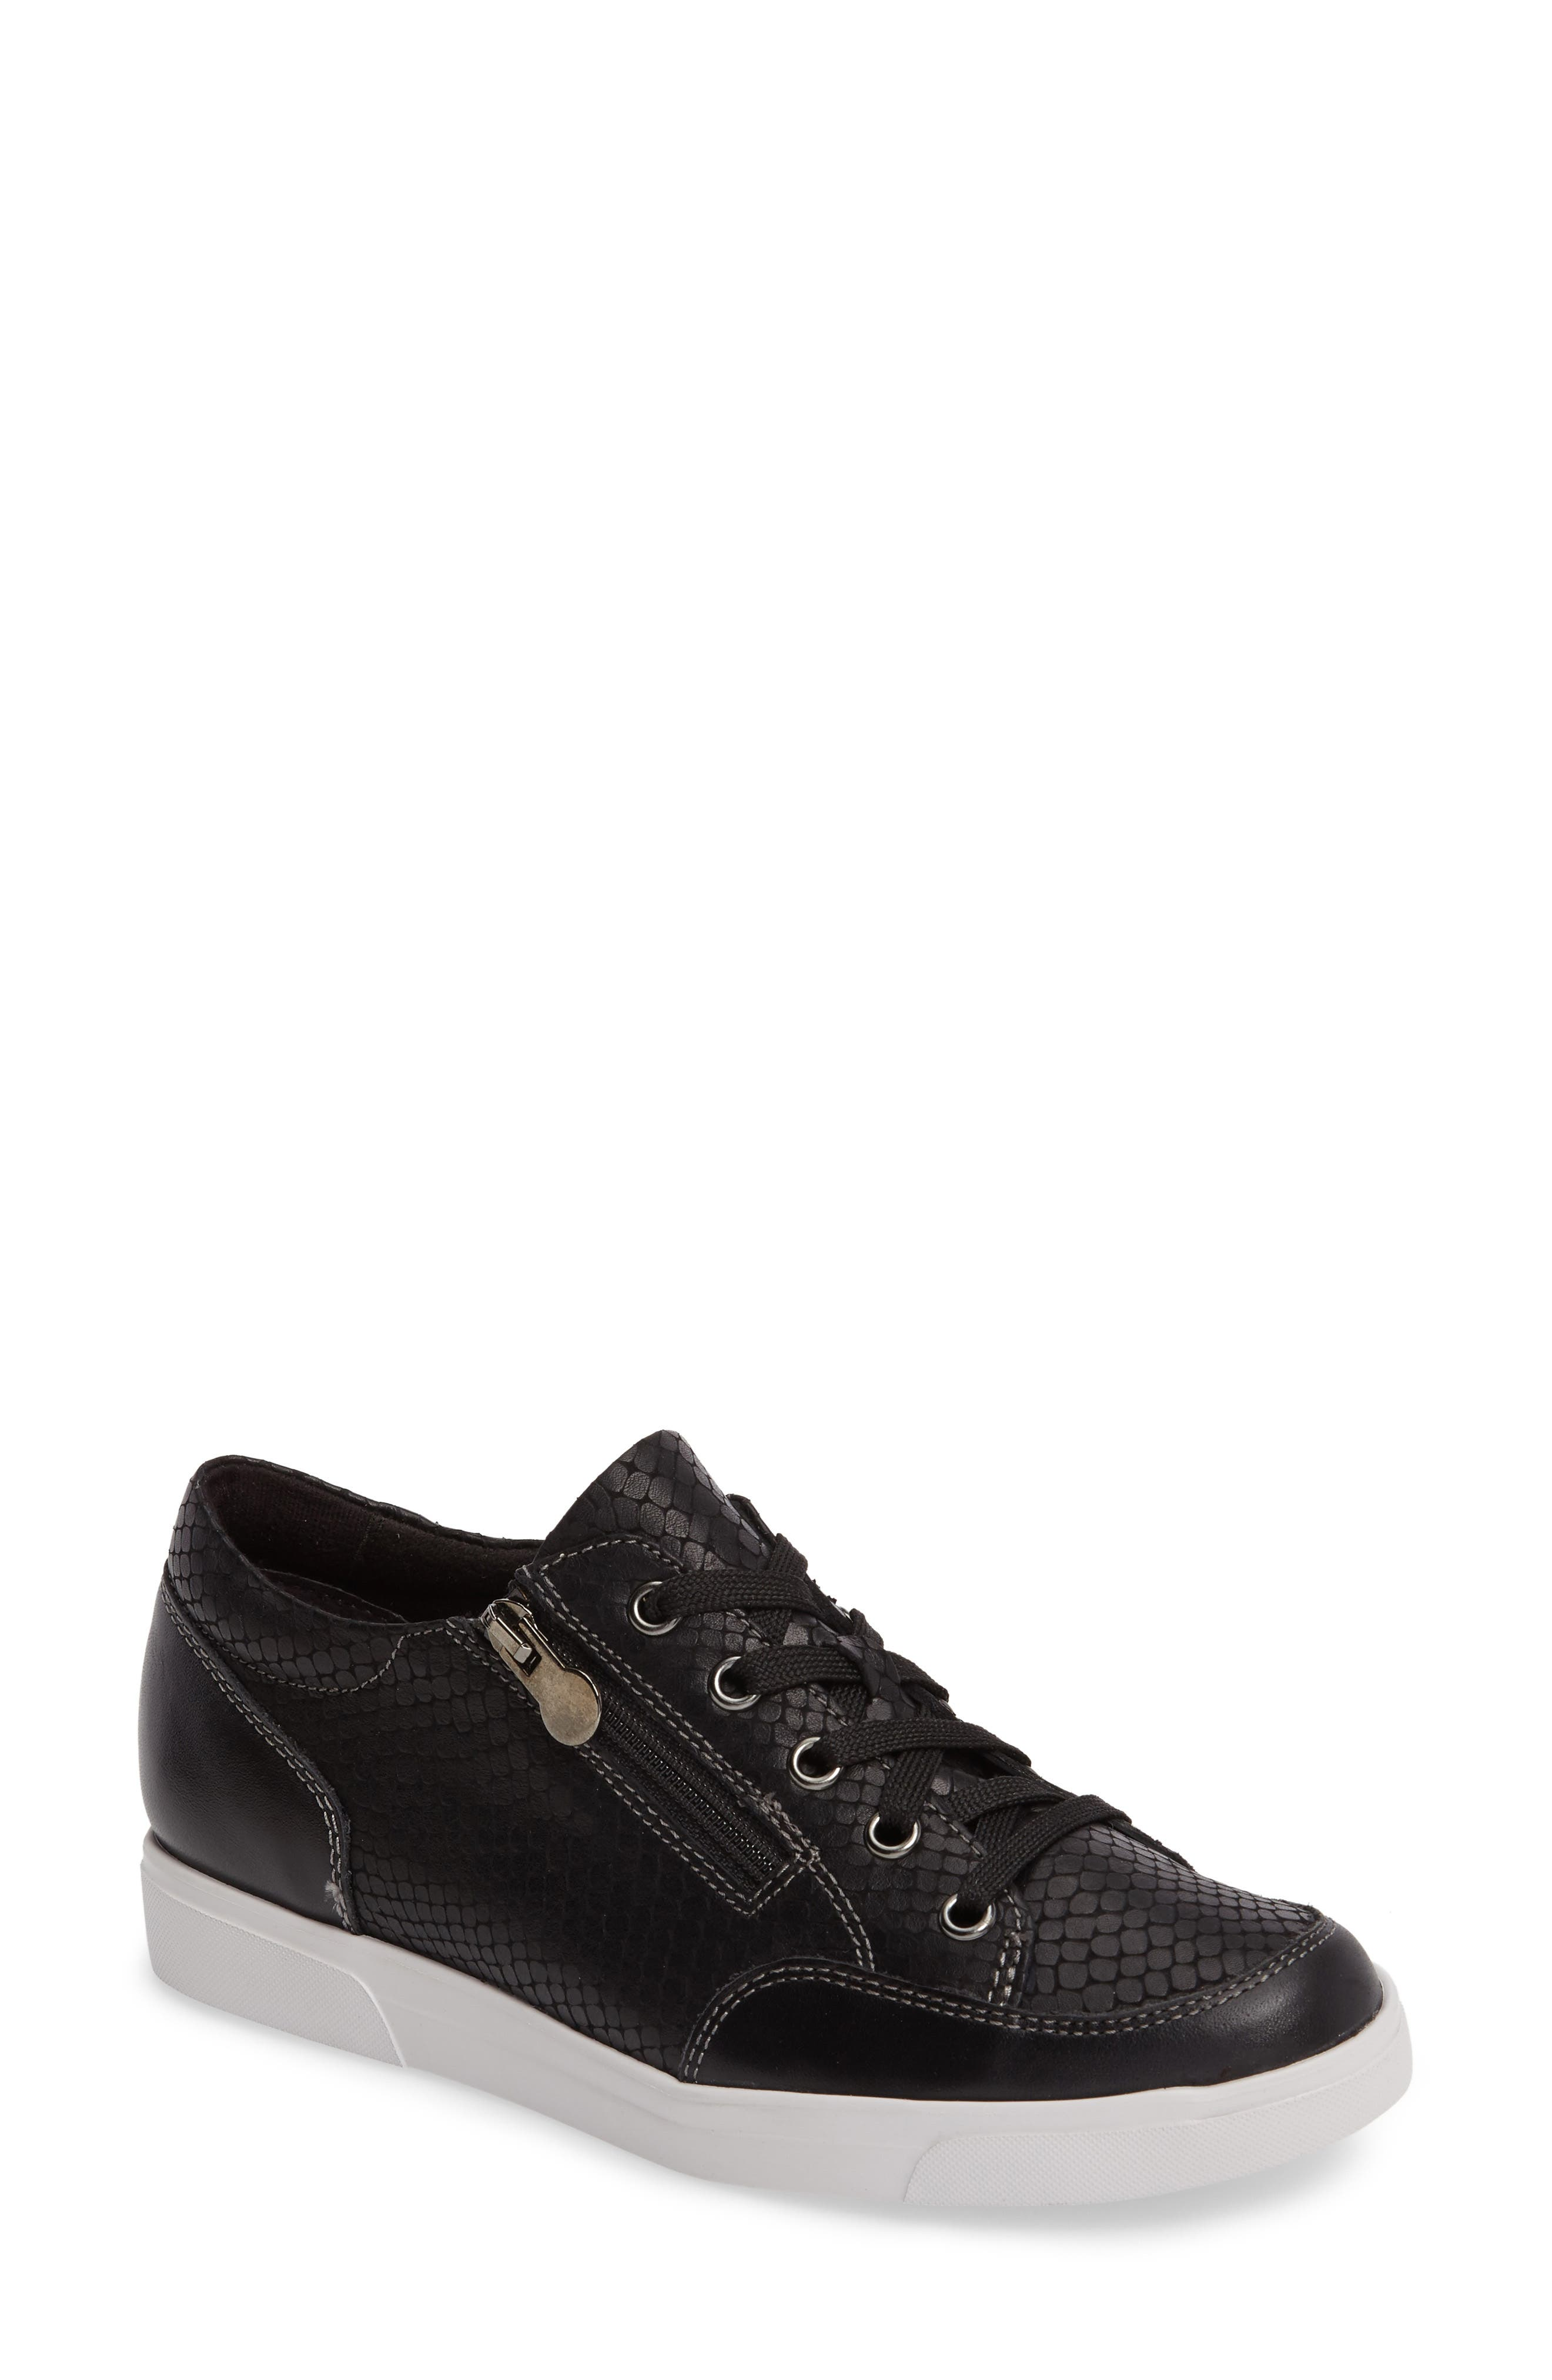 Snakeskin-embossed leather refines a sporty lace-up sneaker featuring a side zip detail, Munro\\\'s flexible, ExtraLite Ultralite sole and signature cushioning. Style Name: Munro Gabbie Sneaker (Women). Style Number: 5313224. Available in stores.